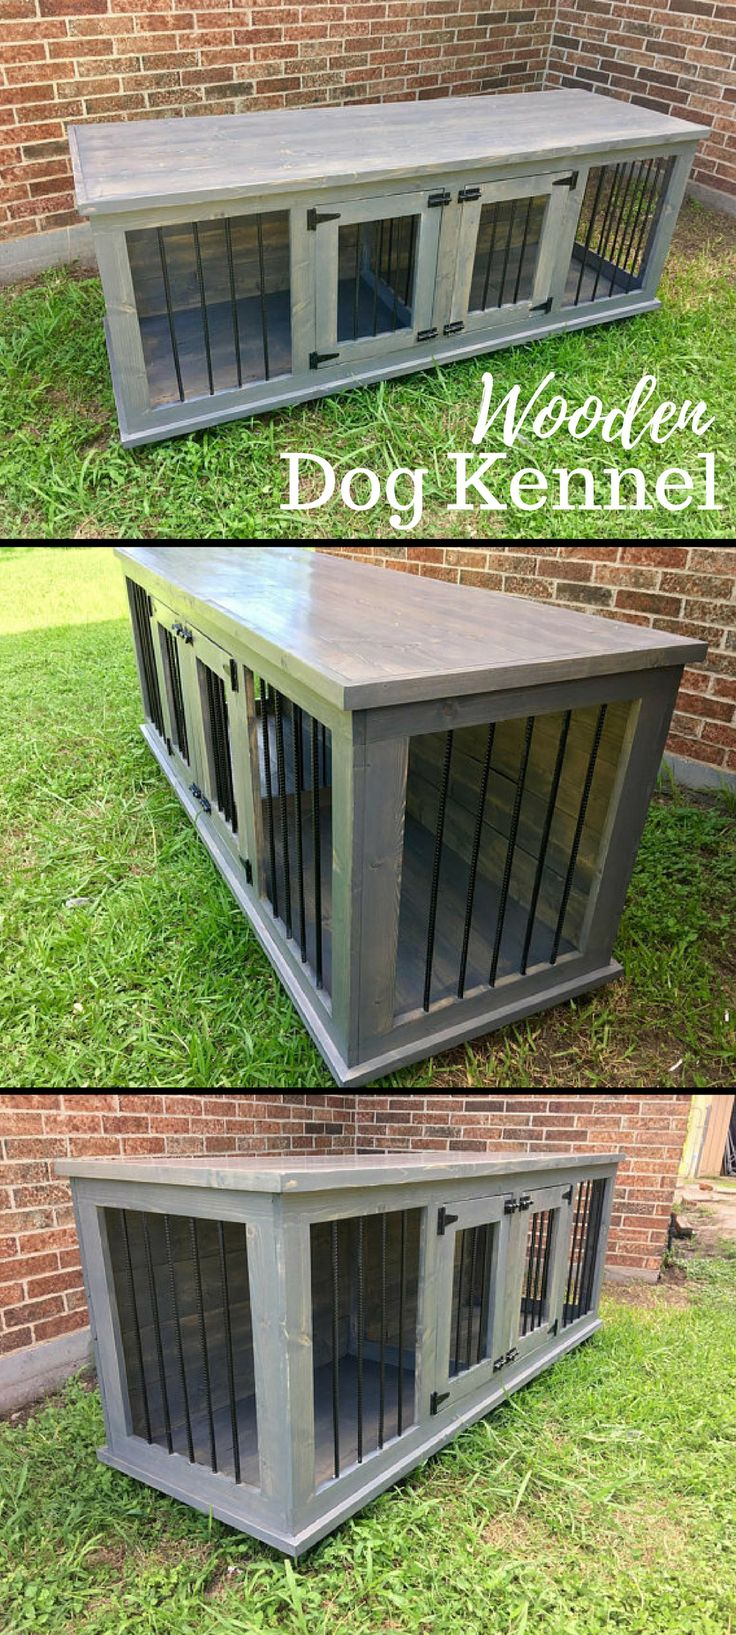 I much prefer the idea of a wooden dog kennel over an ugly dog crate. Going to get my husband to look at these plans. #rustic #DIY #ad